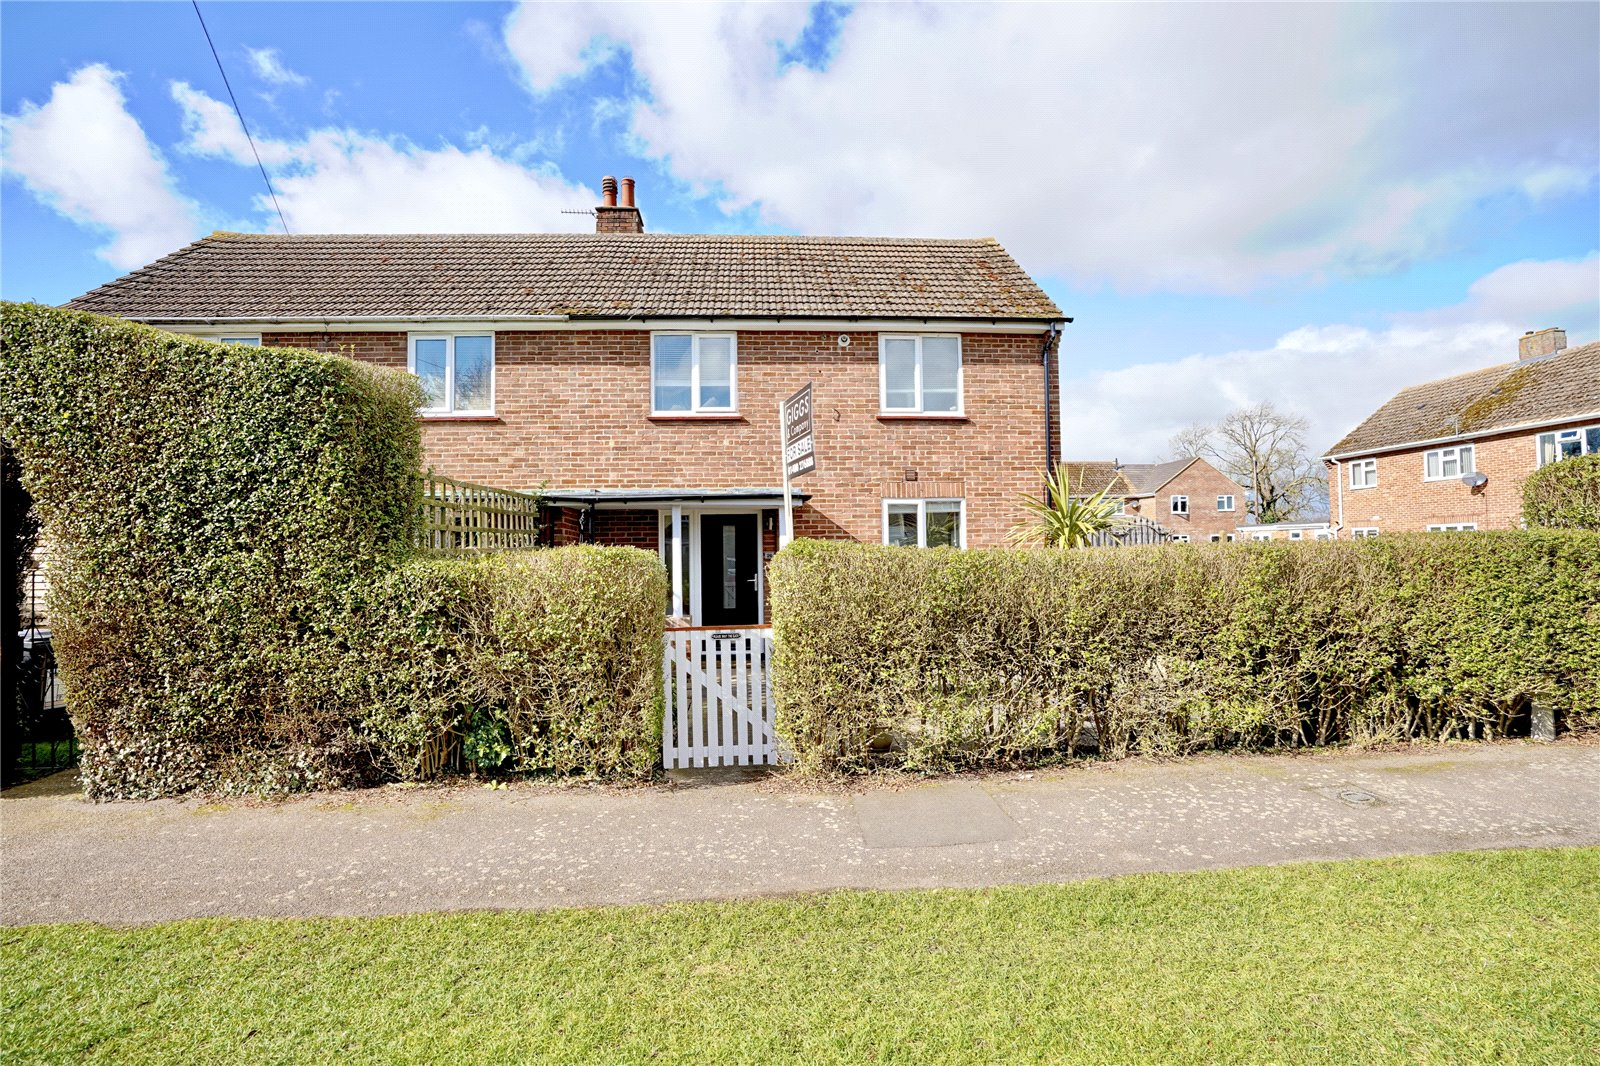 2 bed house for sale in St. Neots, Hawthorn Road, PE19 1EZ, PE19